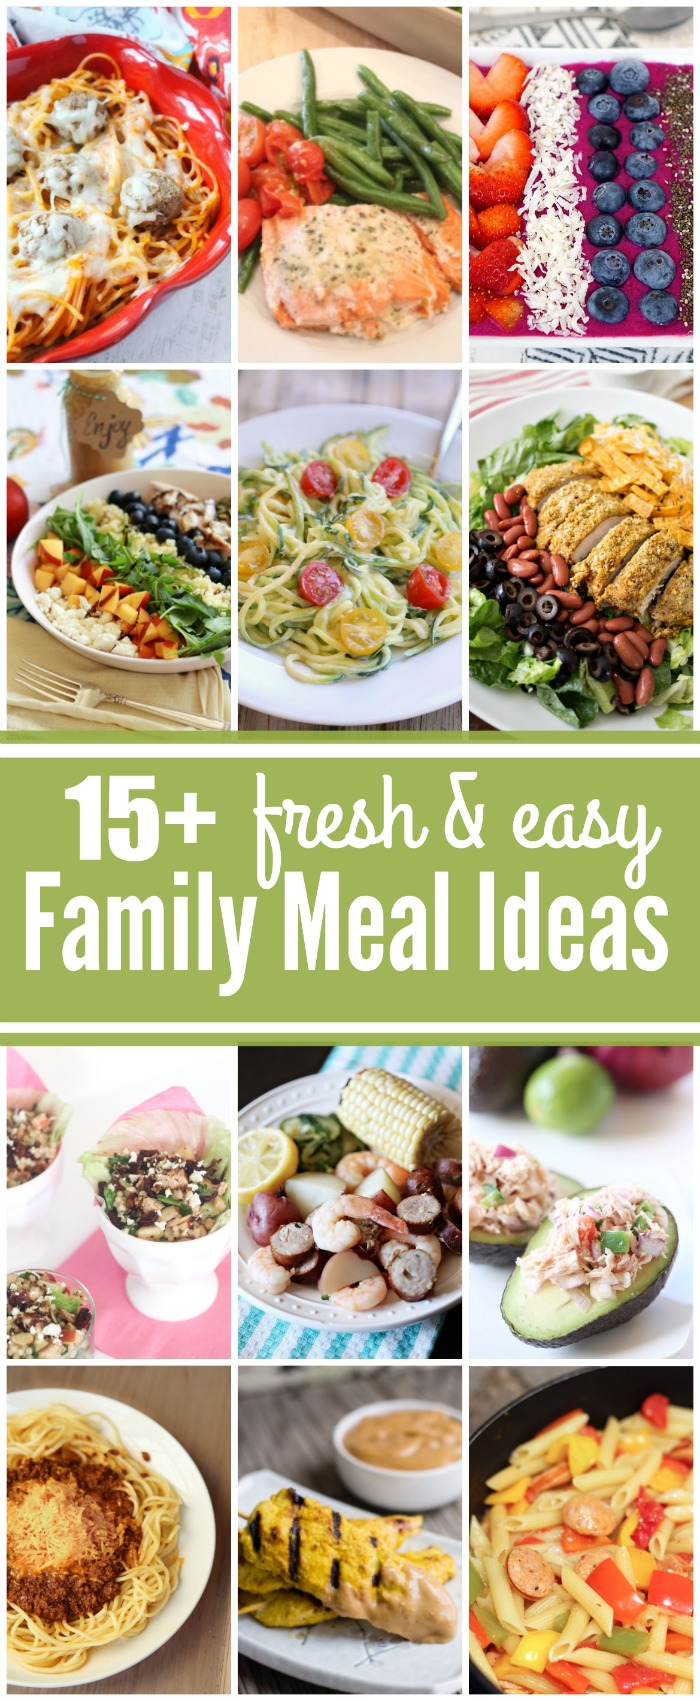 Enjoy these 15 FRESH and Easy Family Meal Ideas from some creative food bloggers!